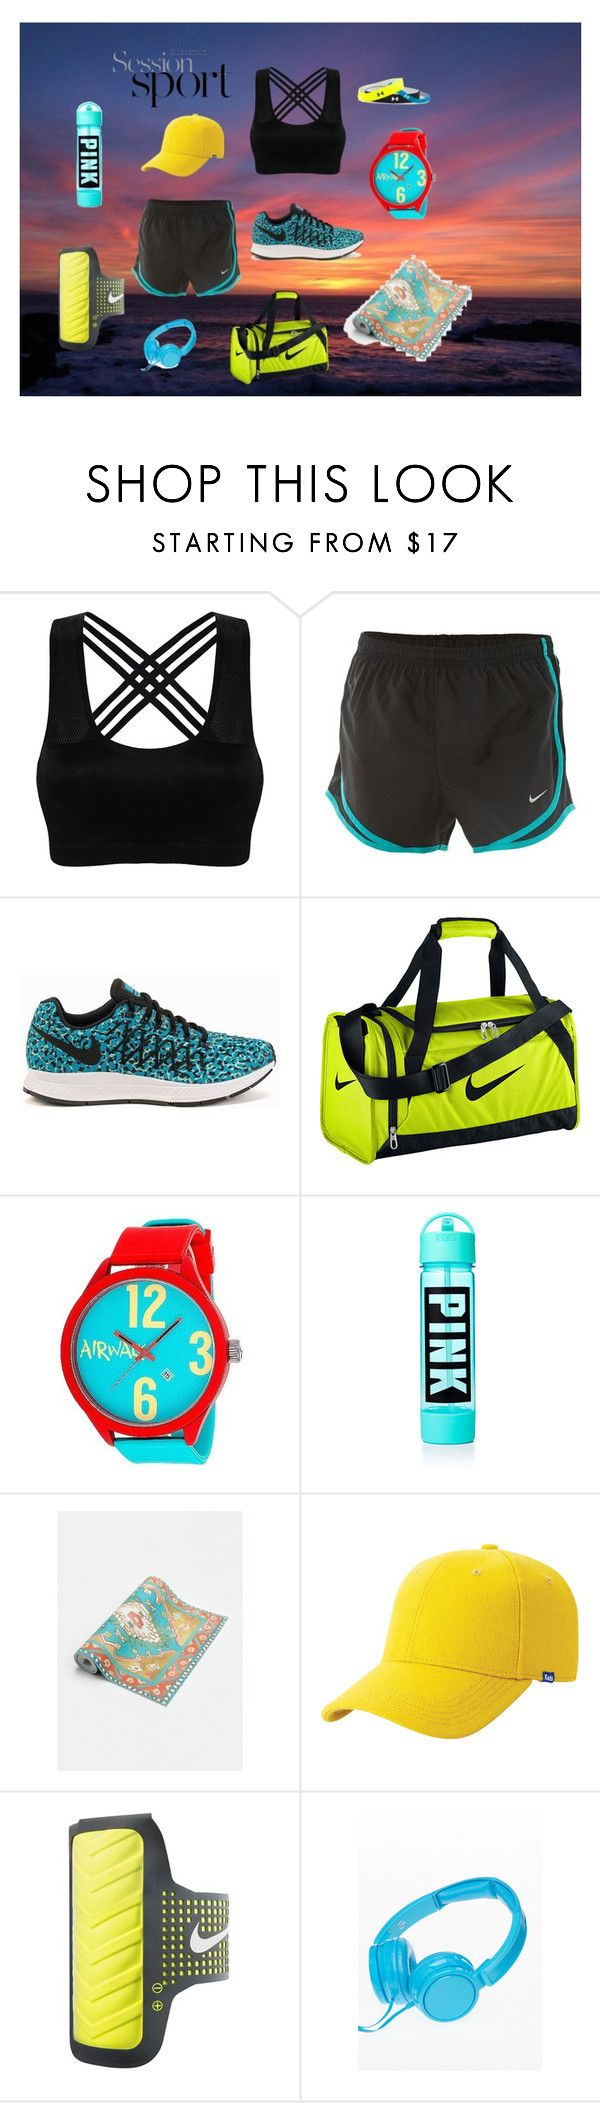 MiMi'z Sport Wear by ciakie29 on Polyvore featuring NIKE, Everlast, Keds, Under Armour, women's clothing, women's fashion, women, female, woman and misses